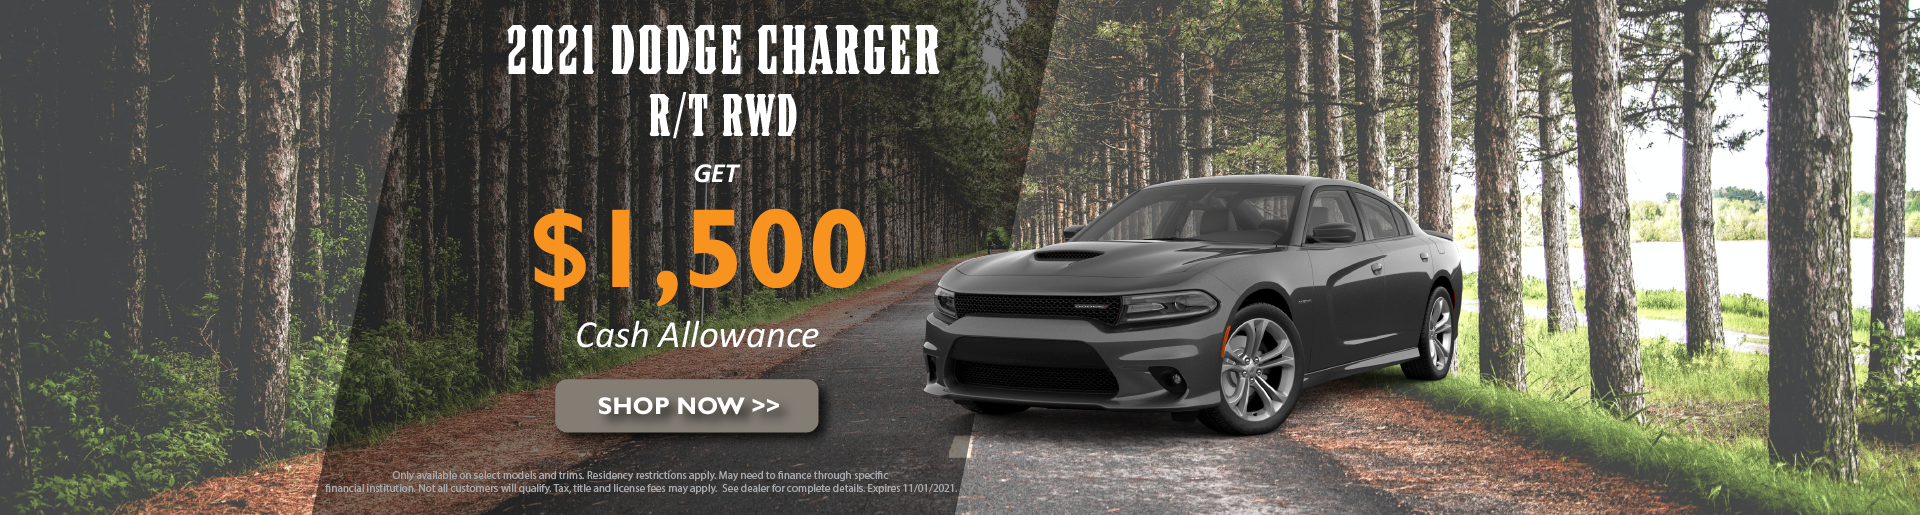 charger dodge legacy